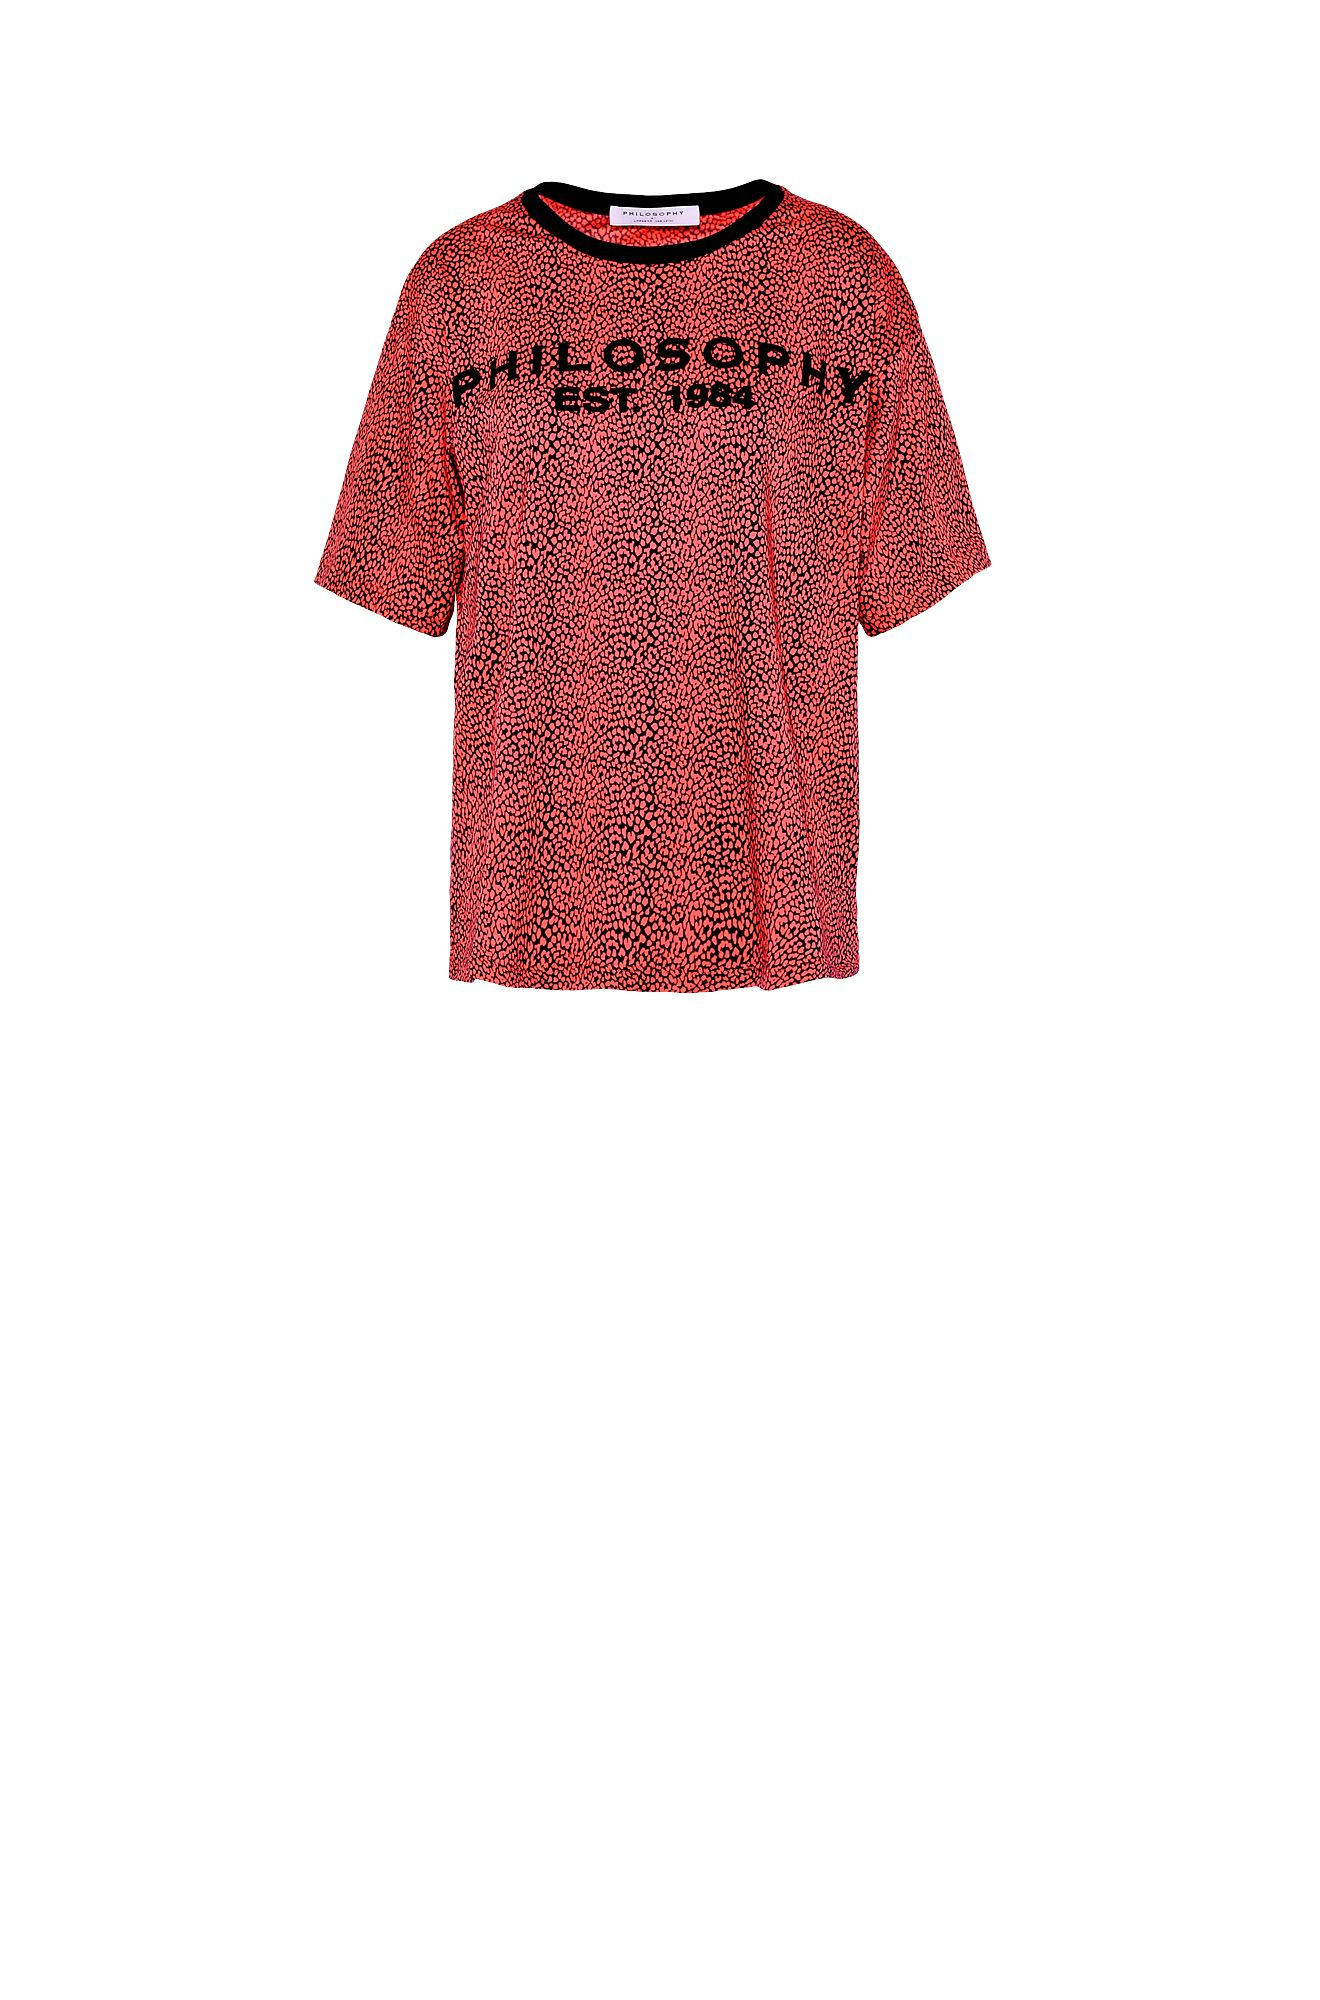 Red T-shirt with micro animal pattern